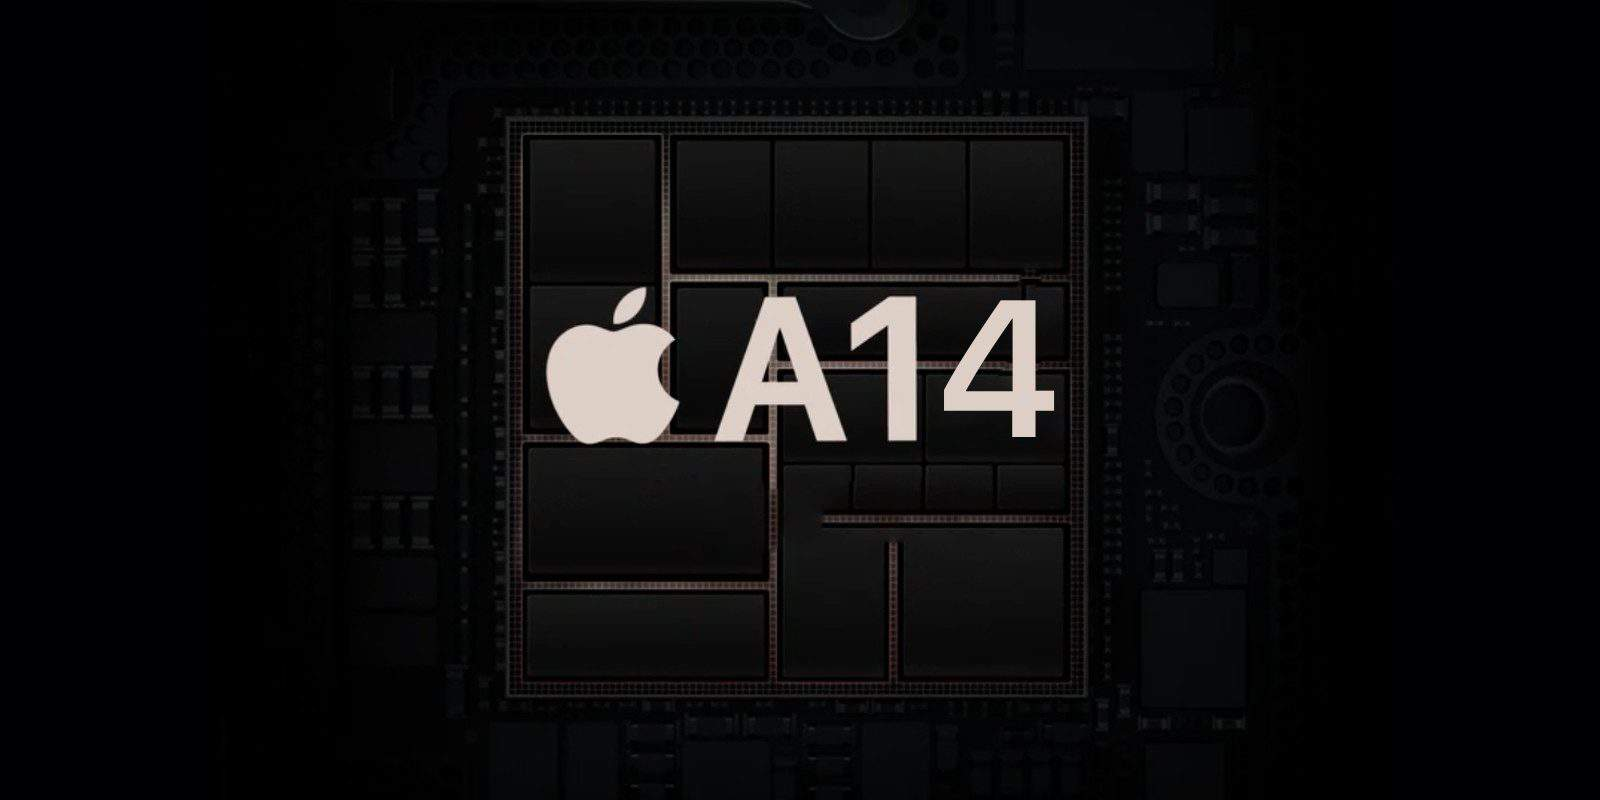 Apple iPhone 12's A14 Bionic could arrive with a 40% increase in CPU performance over the A13